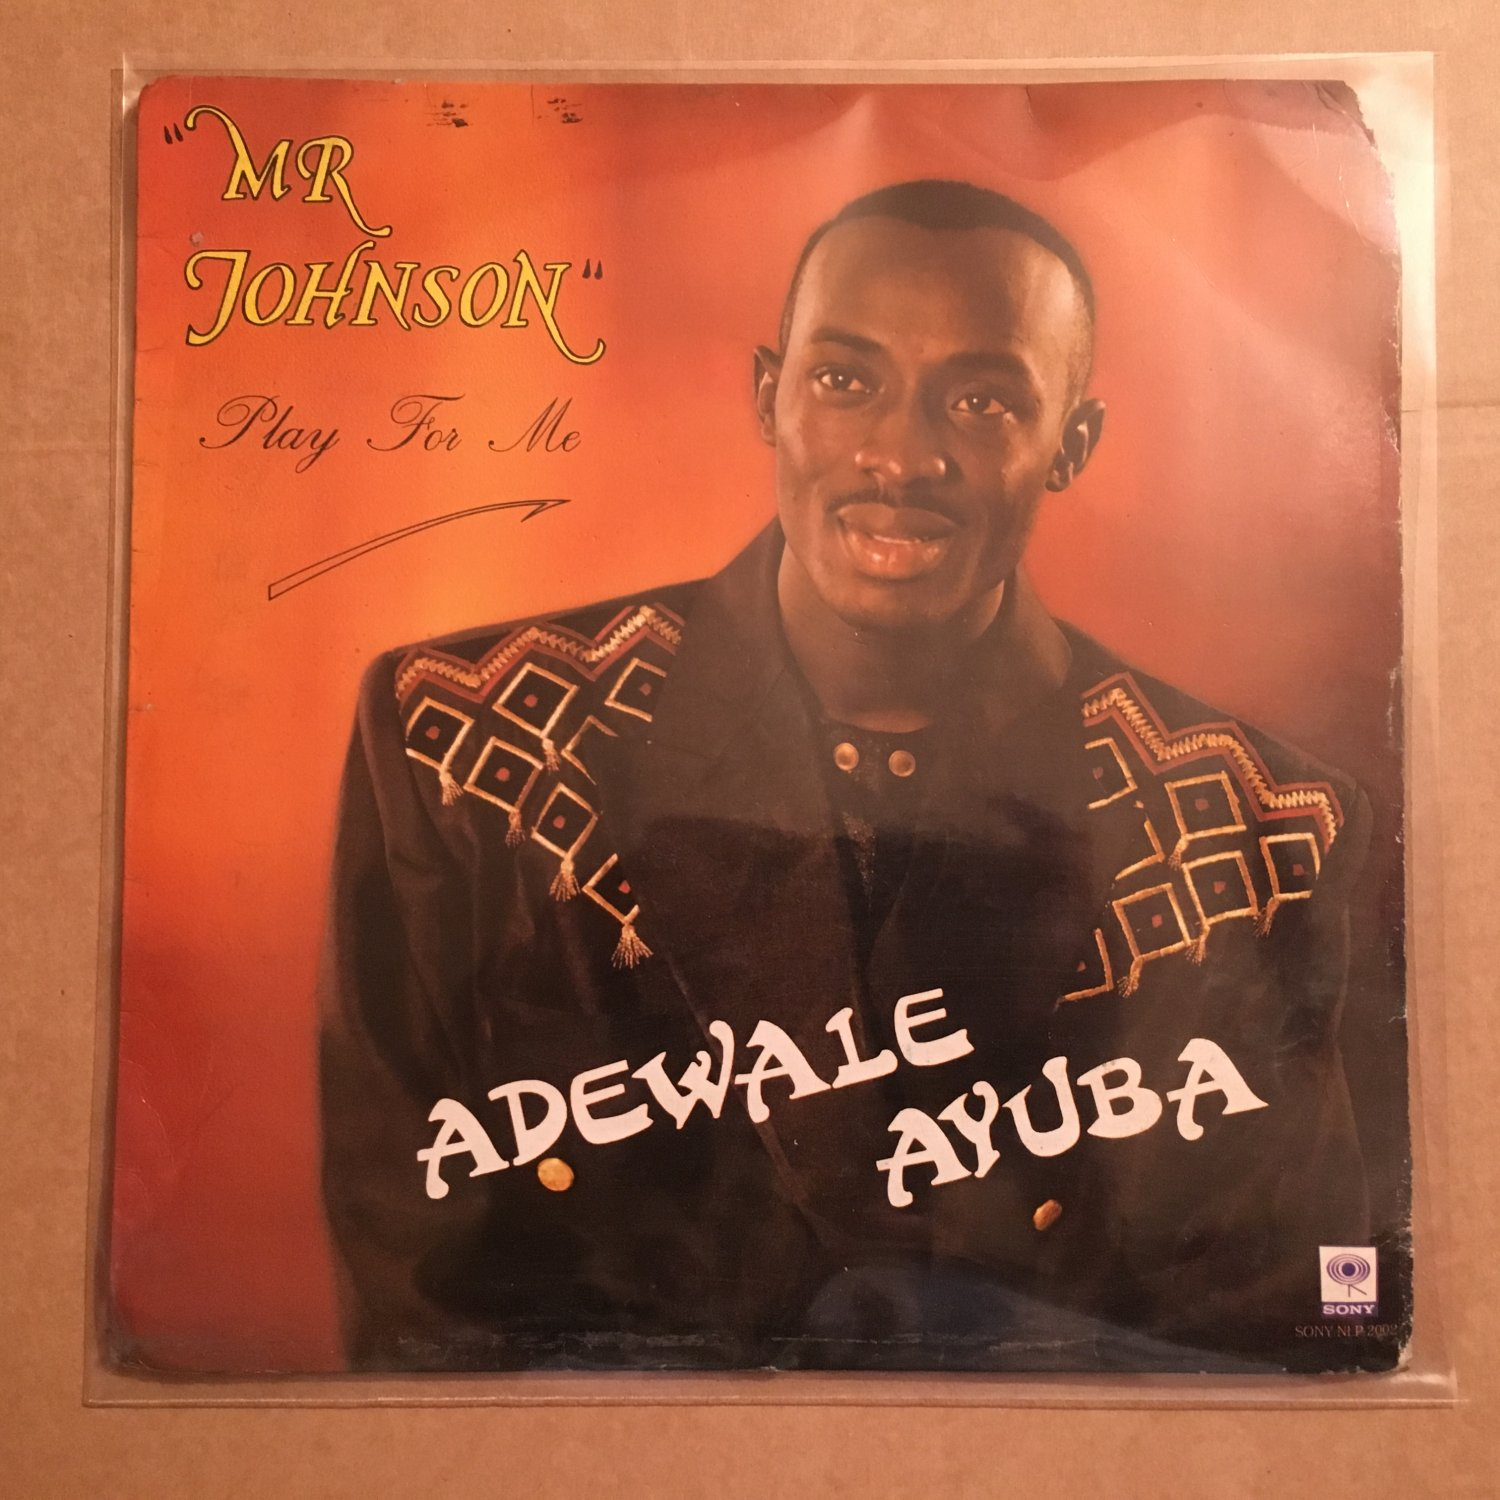 ADEWALE AYUBA LP Mr Johnson play for me NIGERIA mp3 LISTEN